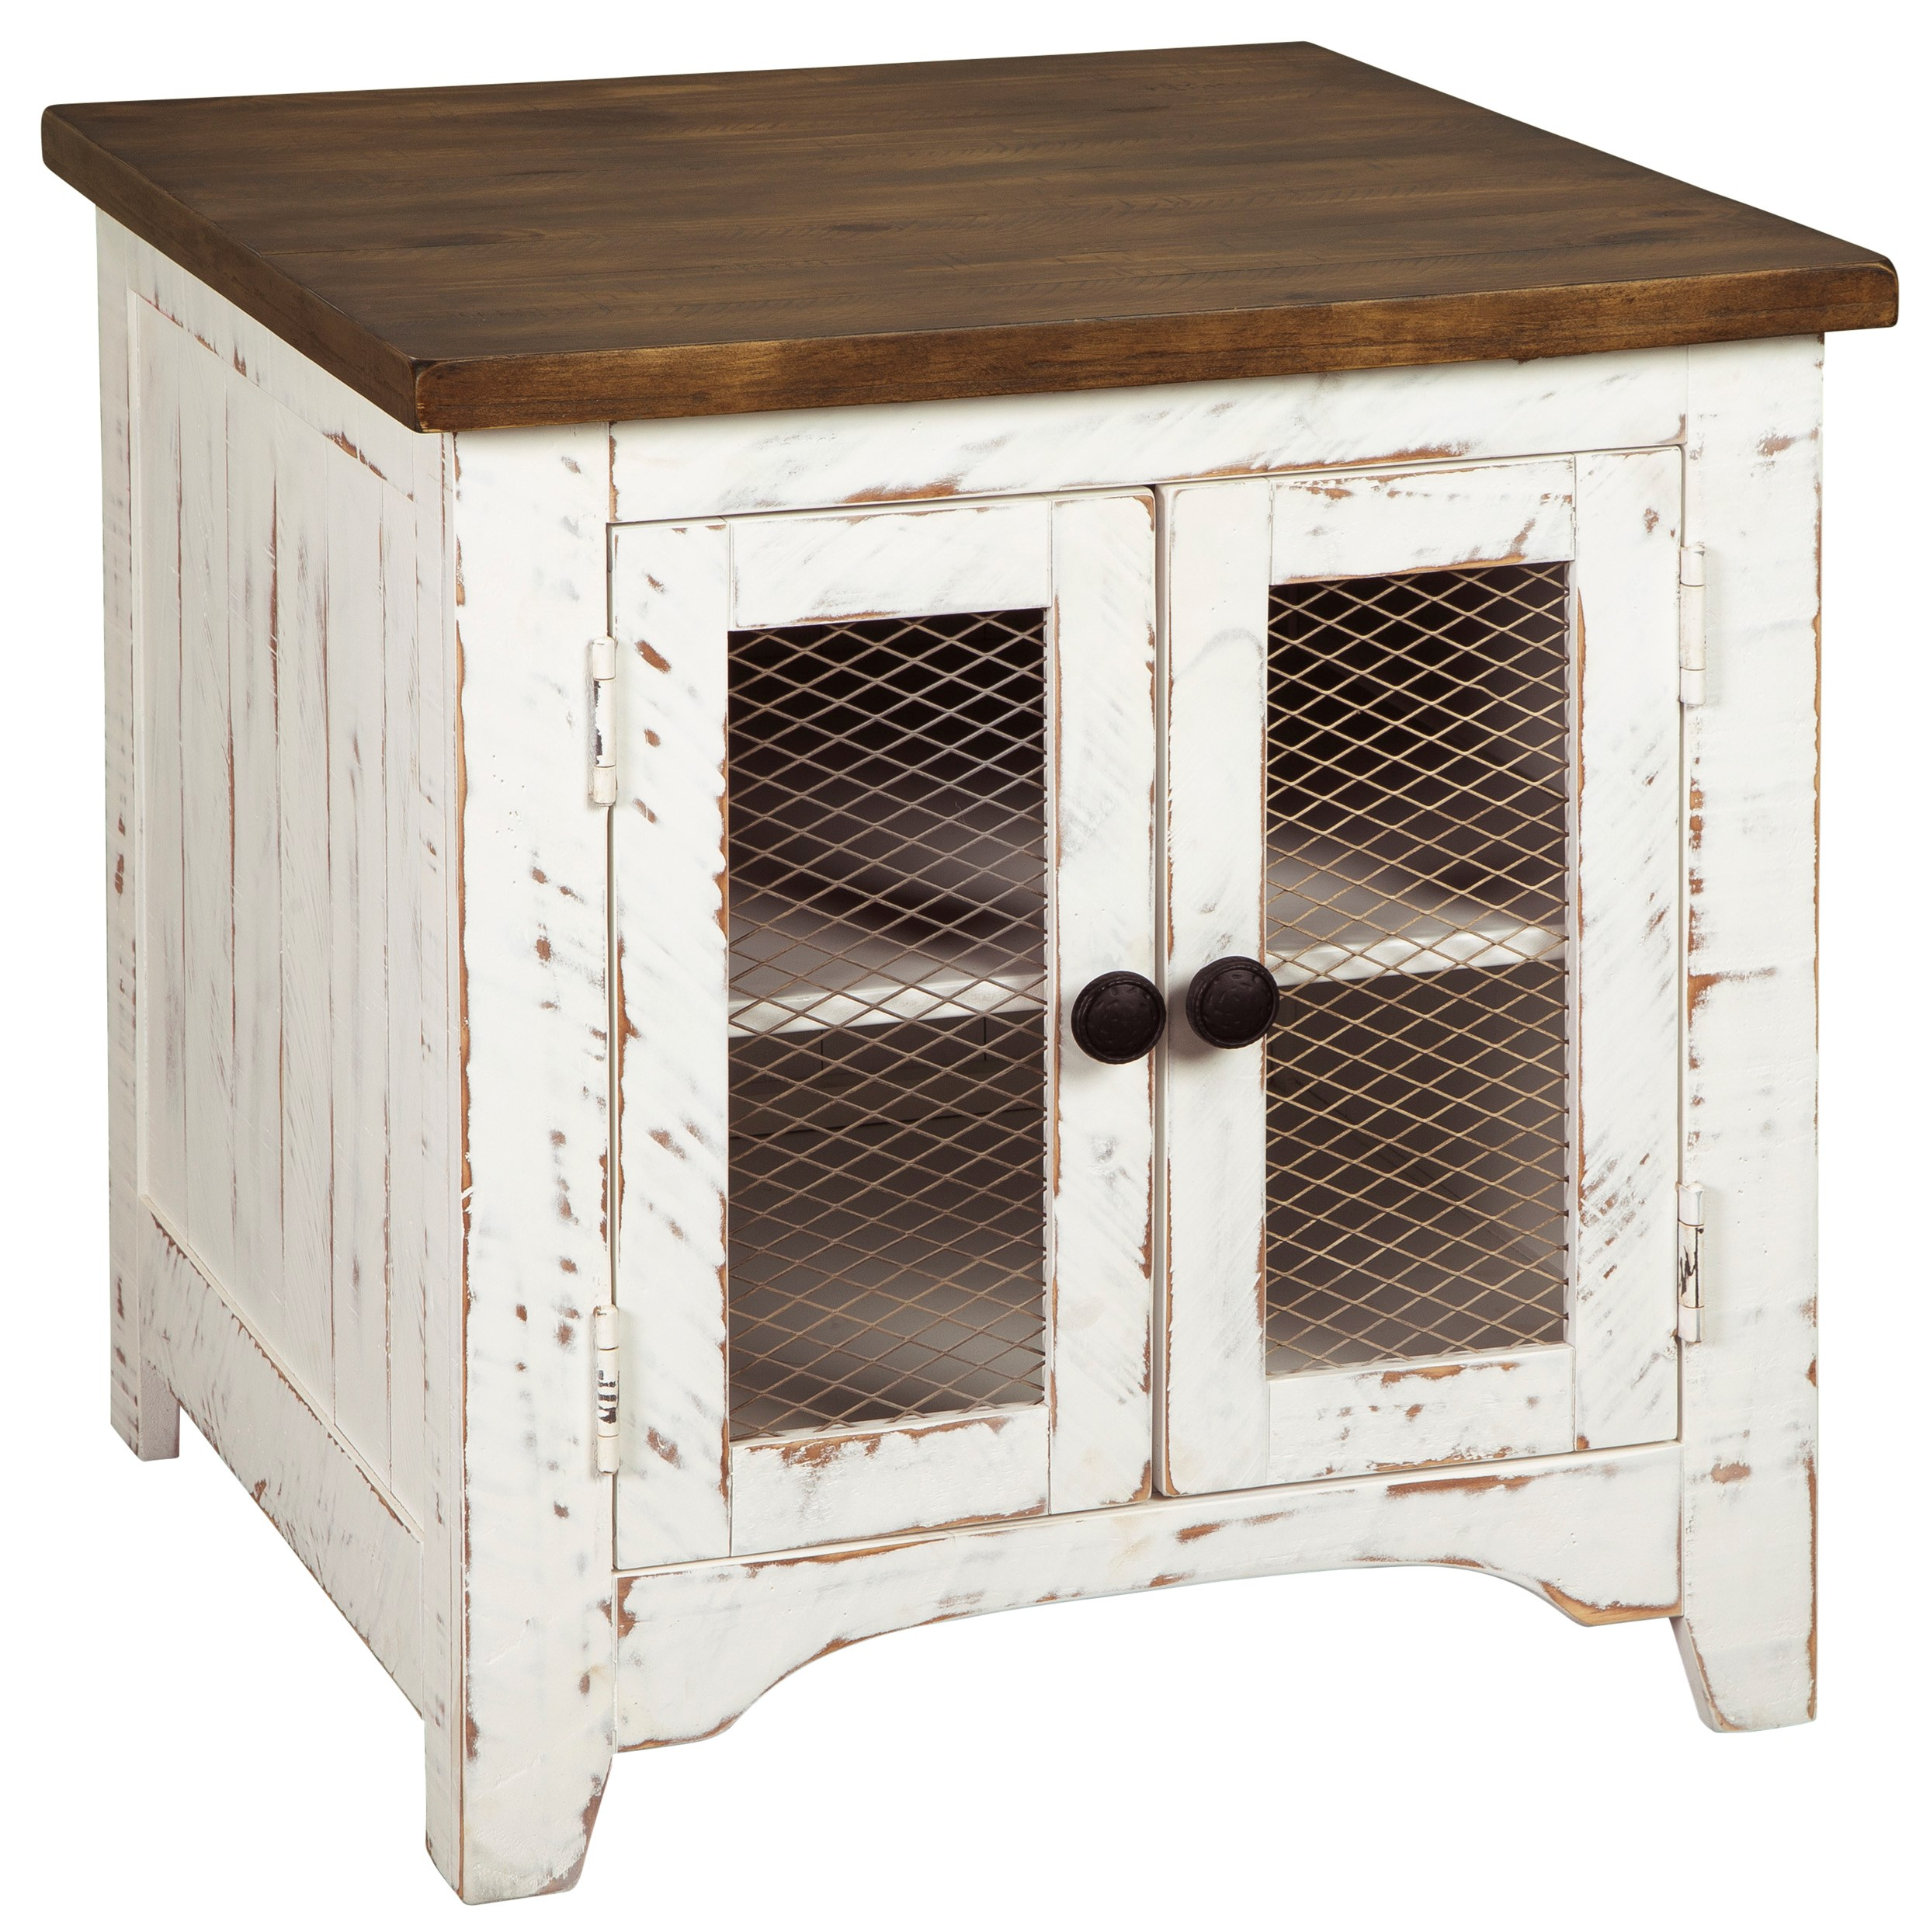 End Table For Living Room Wystfield Farmhouse Rectangular End Table With Two Tone Finish By Signature Design By Ashley At Houston S Yuma Furniture